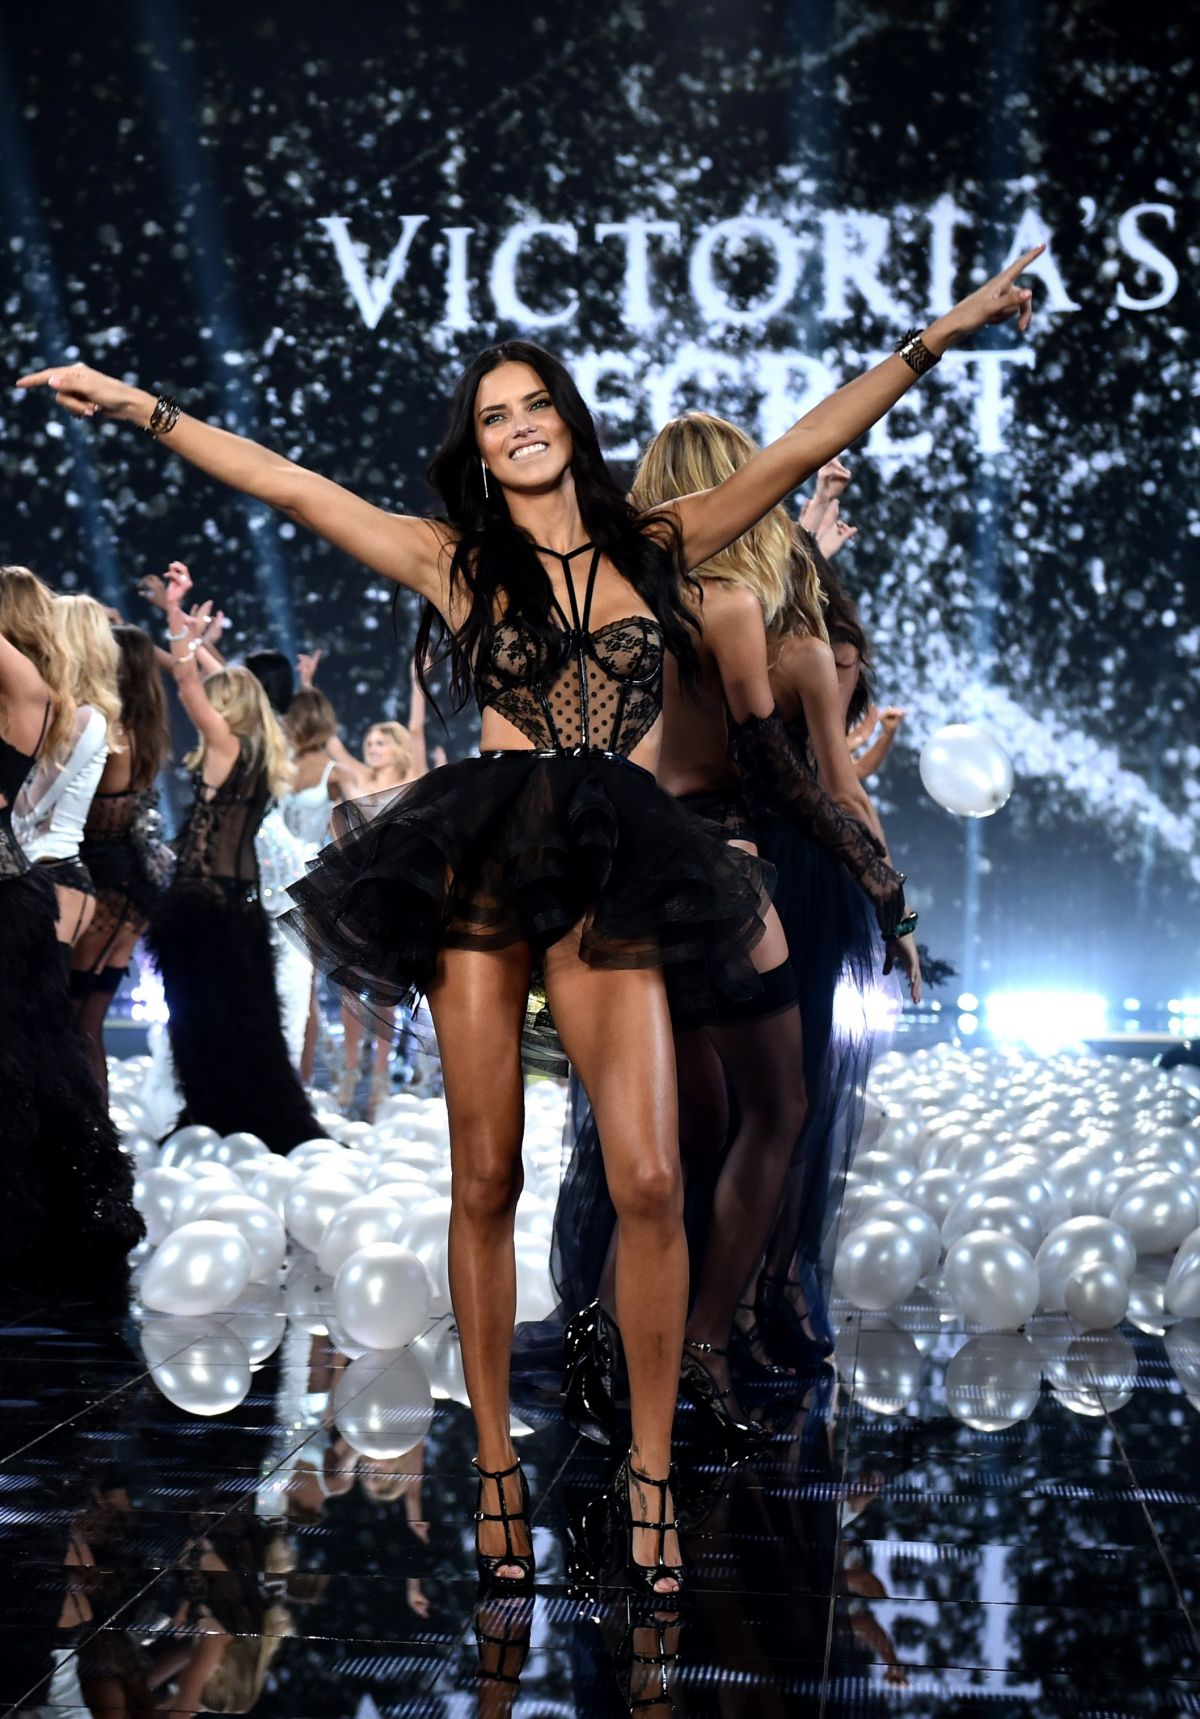 victoria secrets Victoria's secret is an american designer, manufacturer, and marketer of  women's lingerie, womenswear, and beauty products founded in 1977 as a  response.